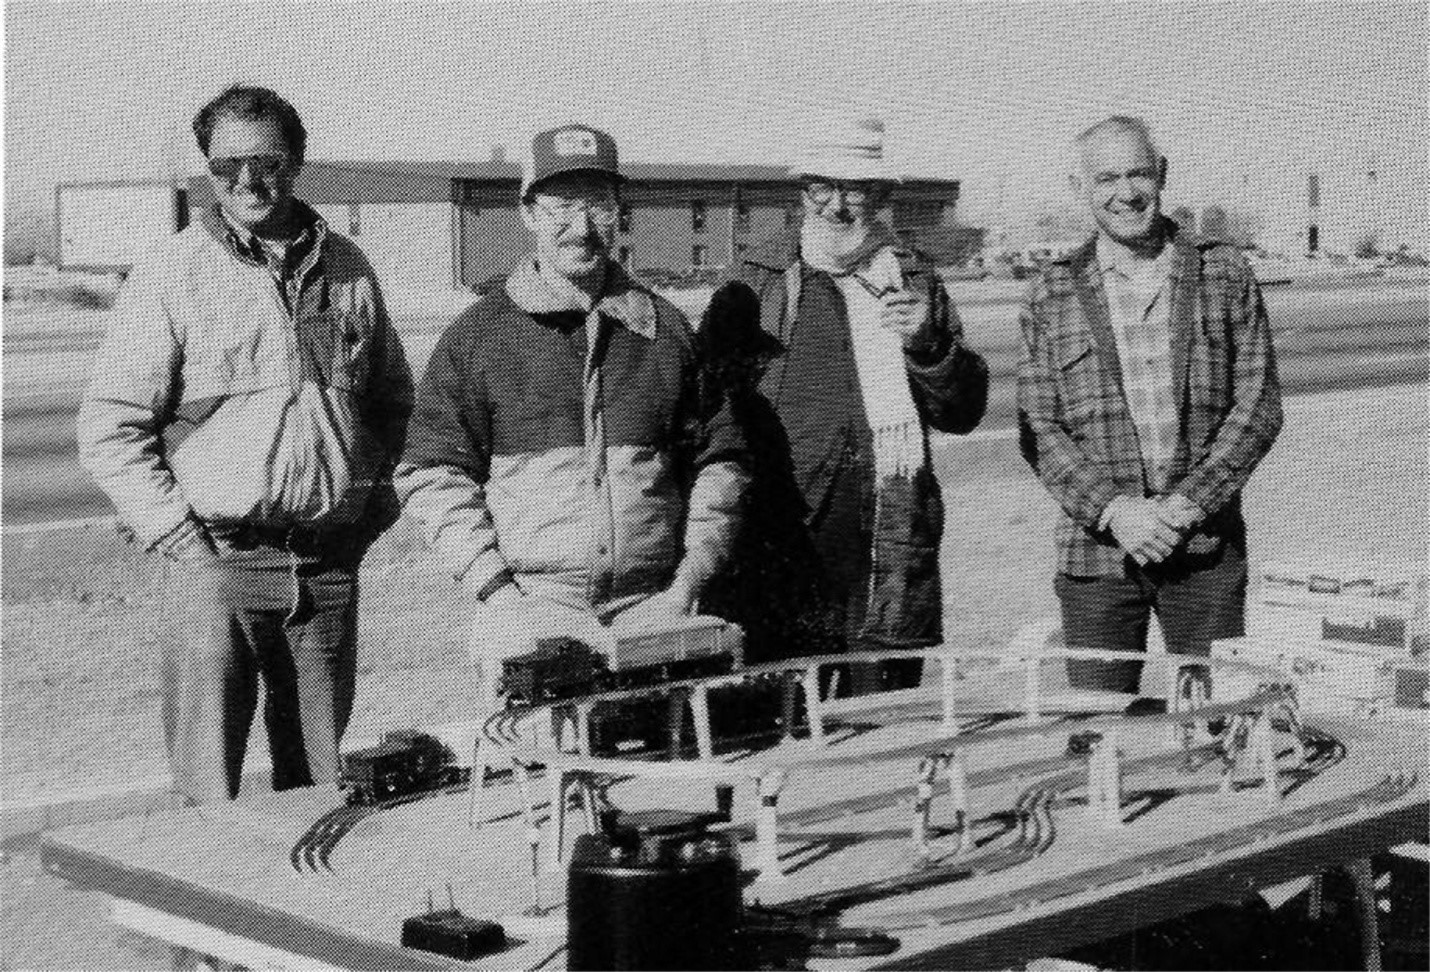 THE FIRST NEW MEXICO TOY TRAIN SWAP MEET IN 1985